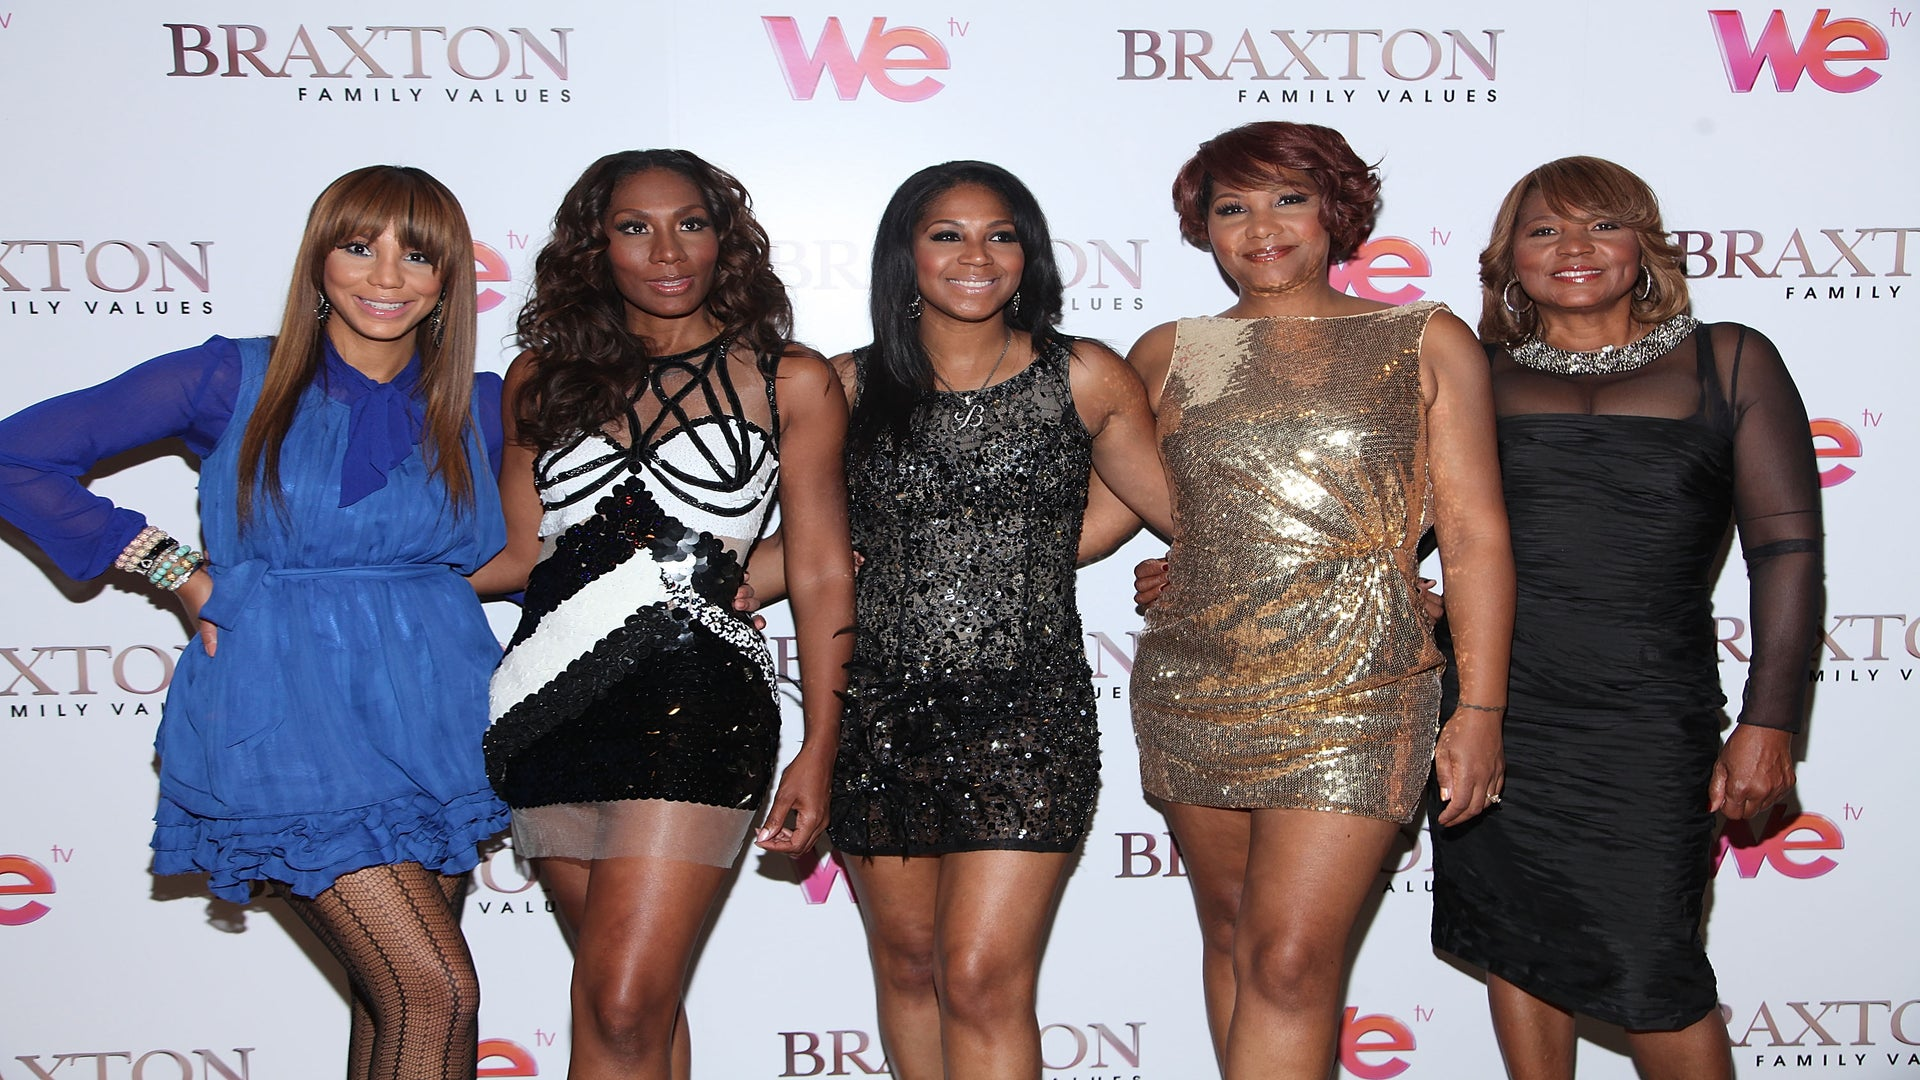 Real Talk: Do You Expect More From the Braxtons?